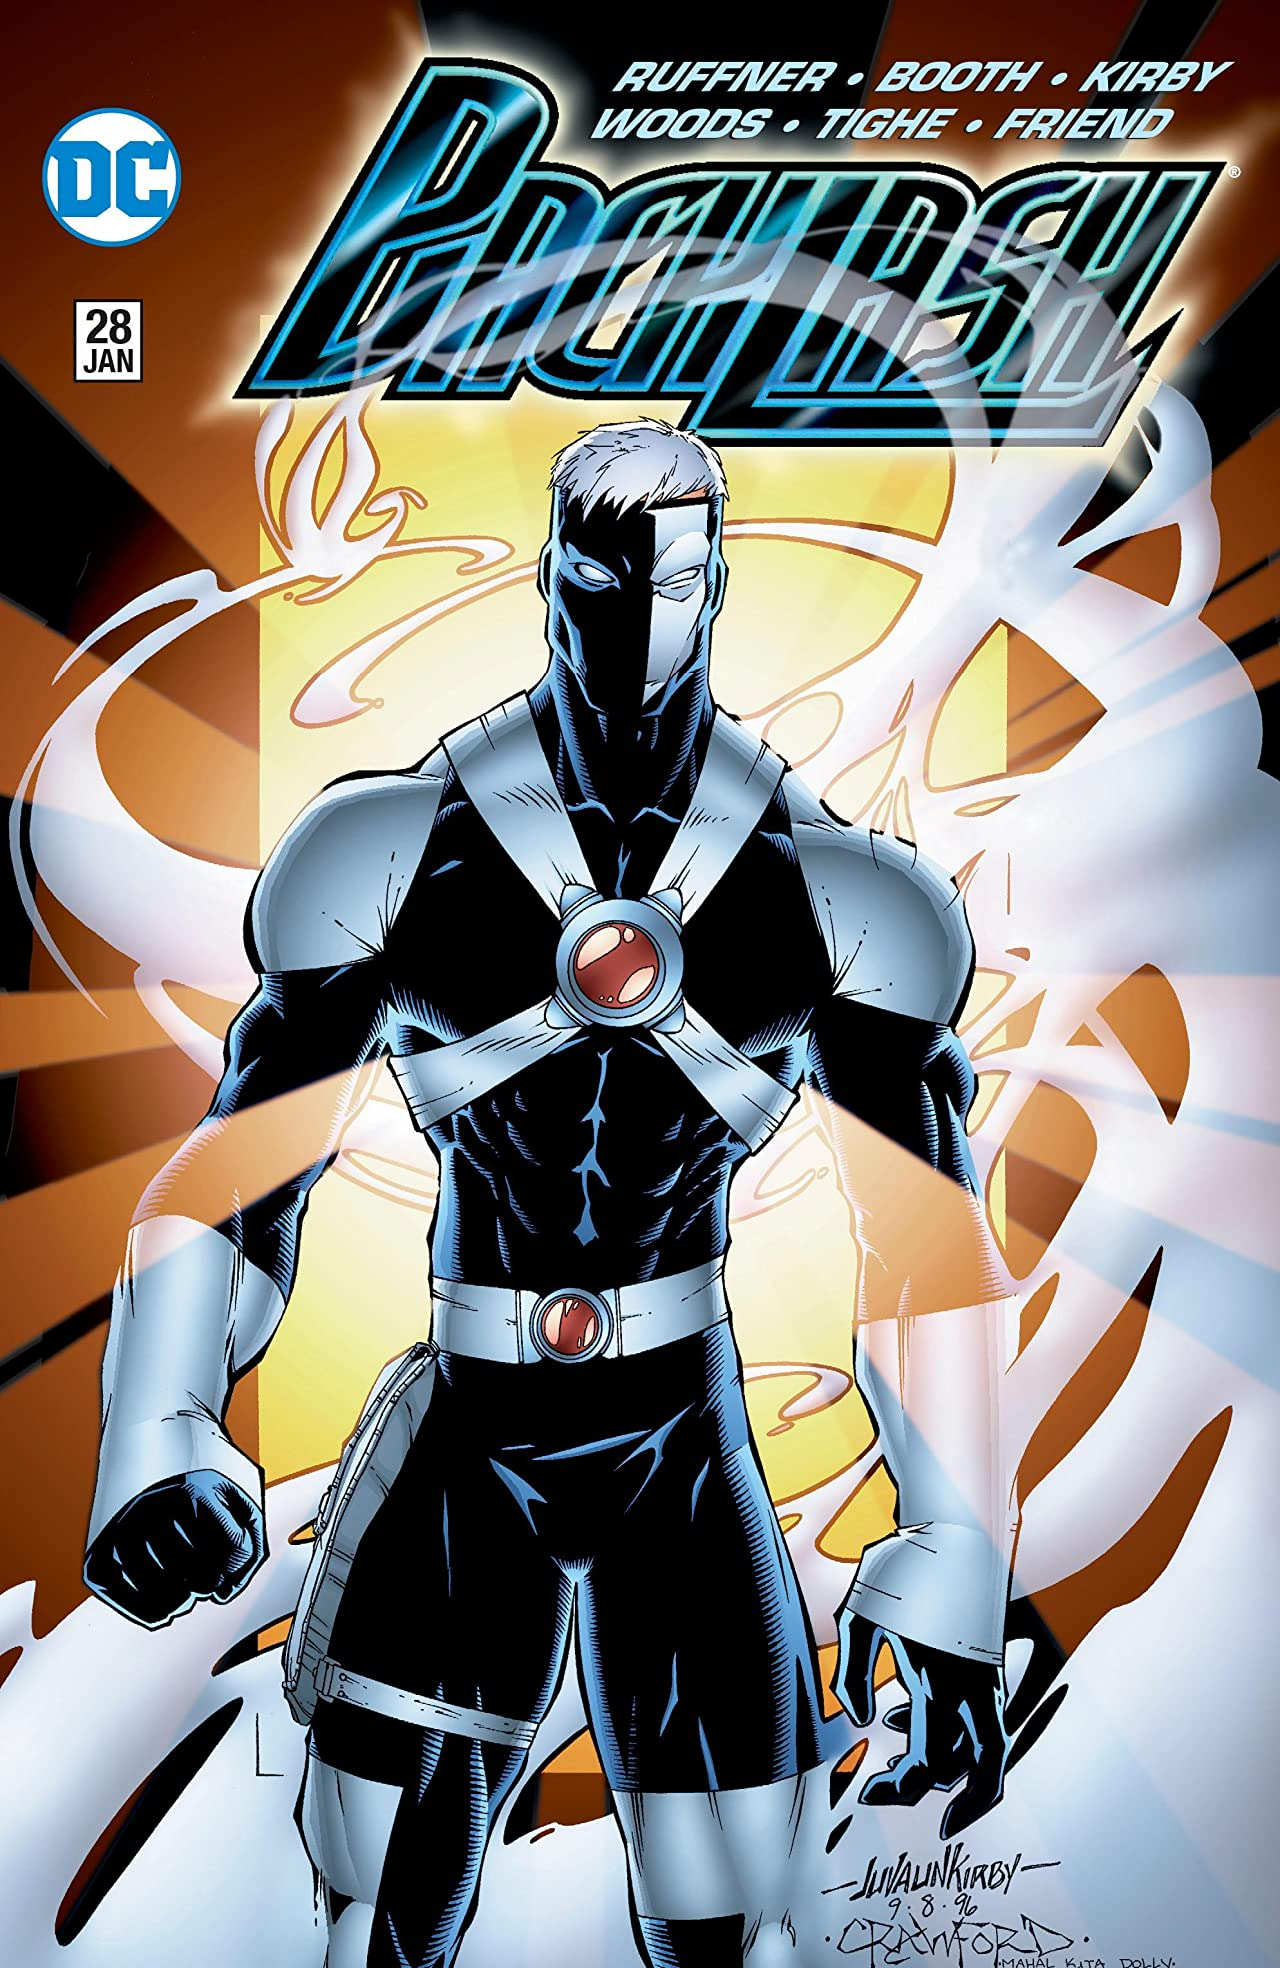 Backlash (1994-1997) #28